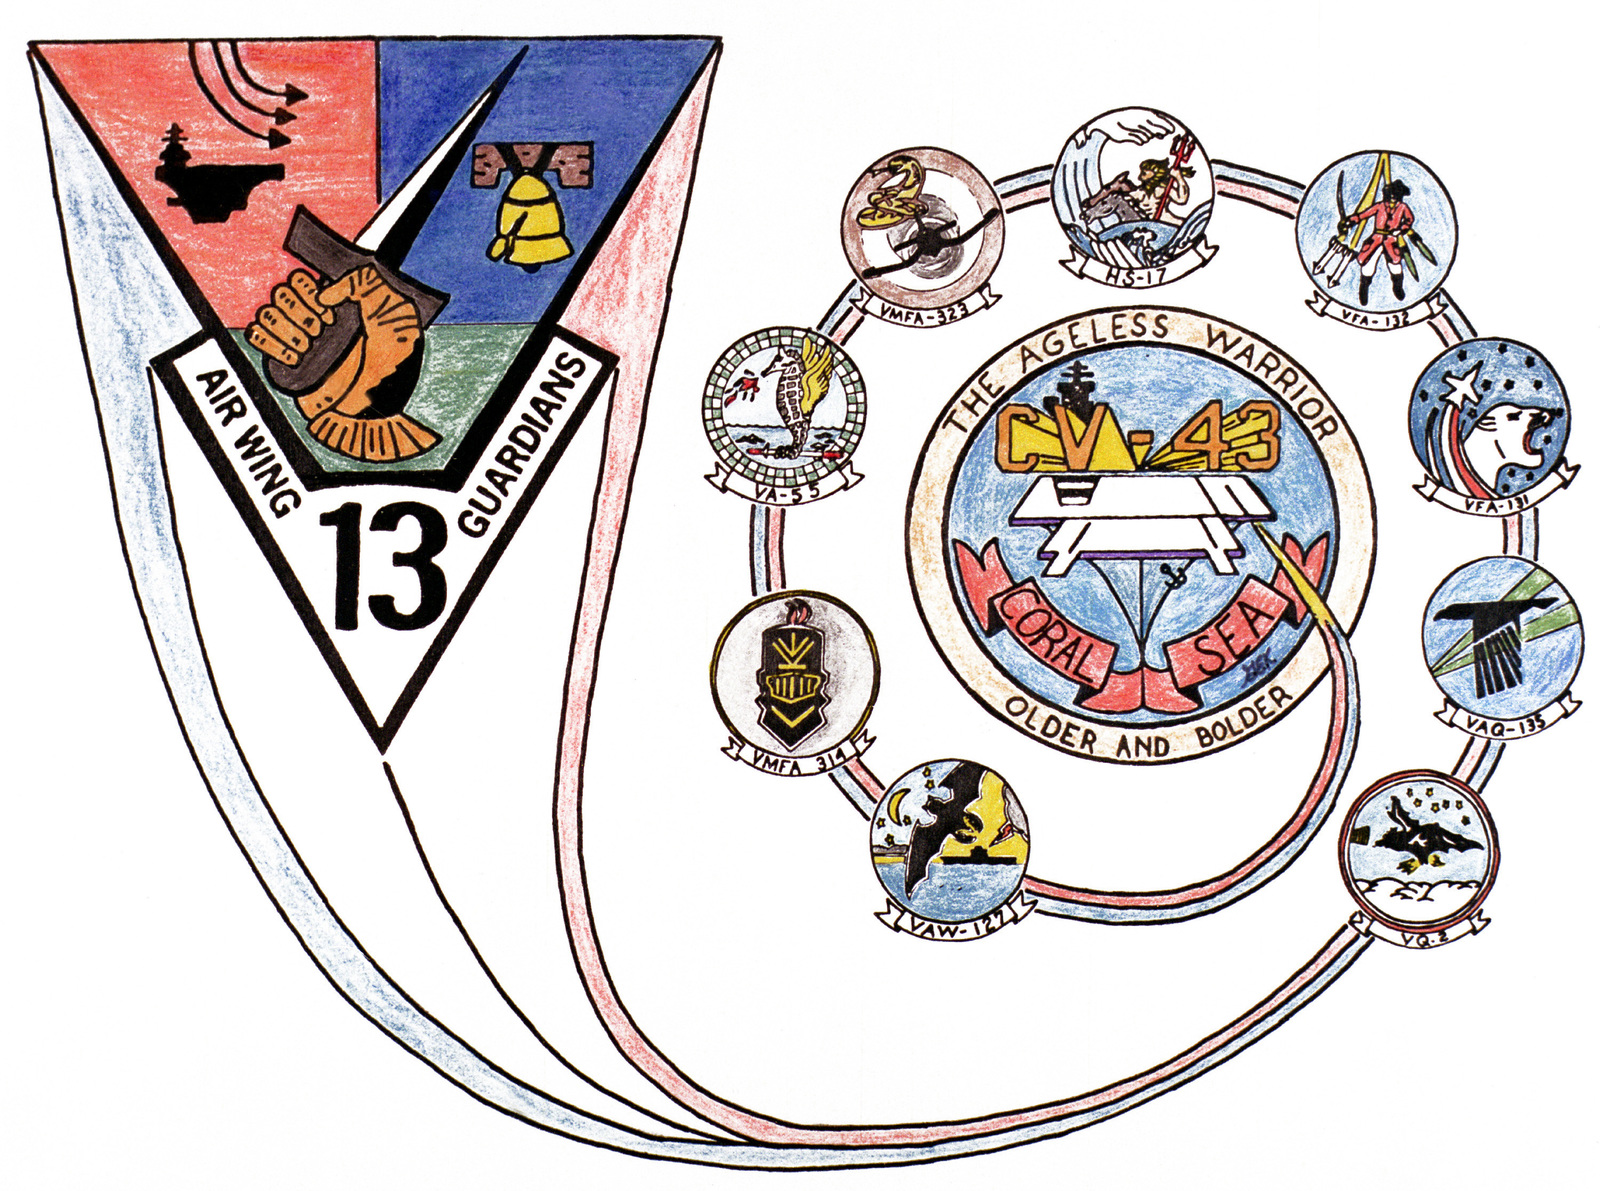 insignia for  carrier air wing 13  its component squadrons and the ship u0026 39 s logo for the aircraft